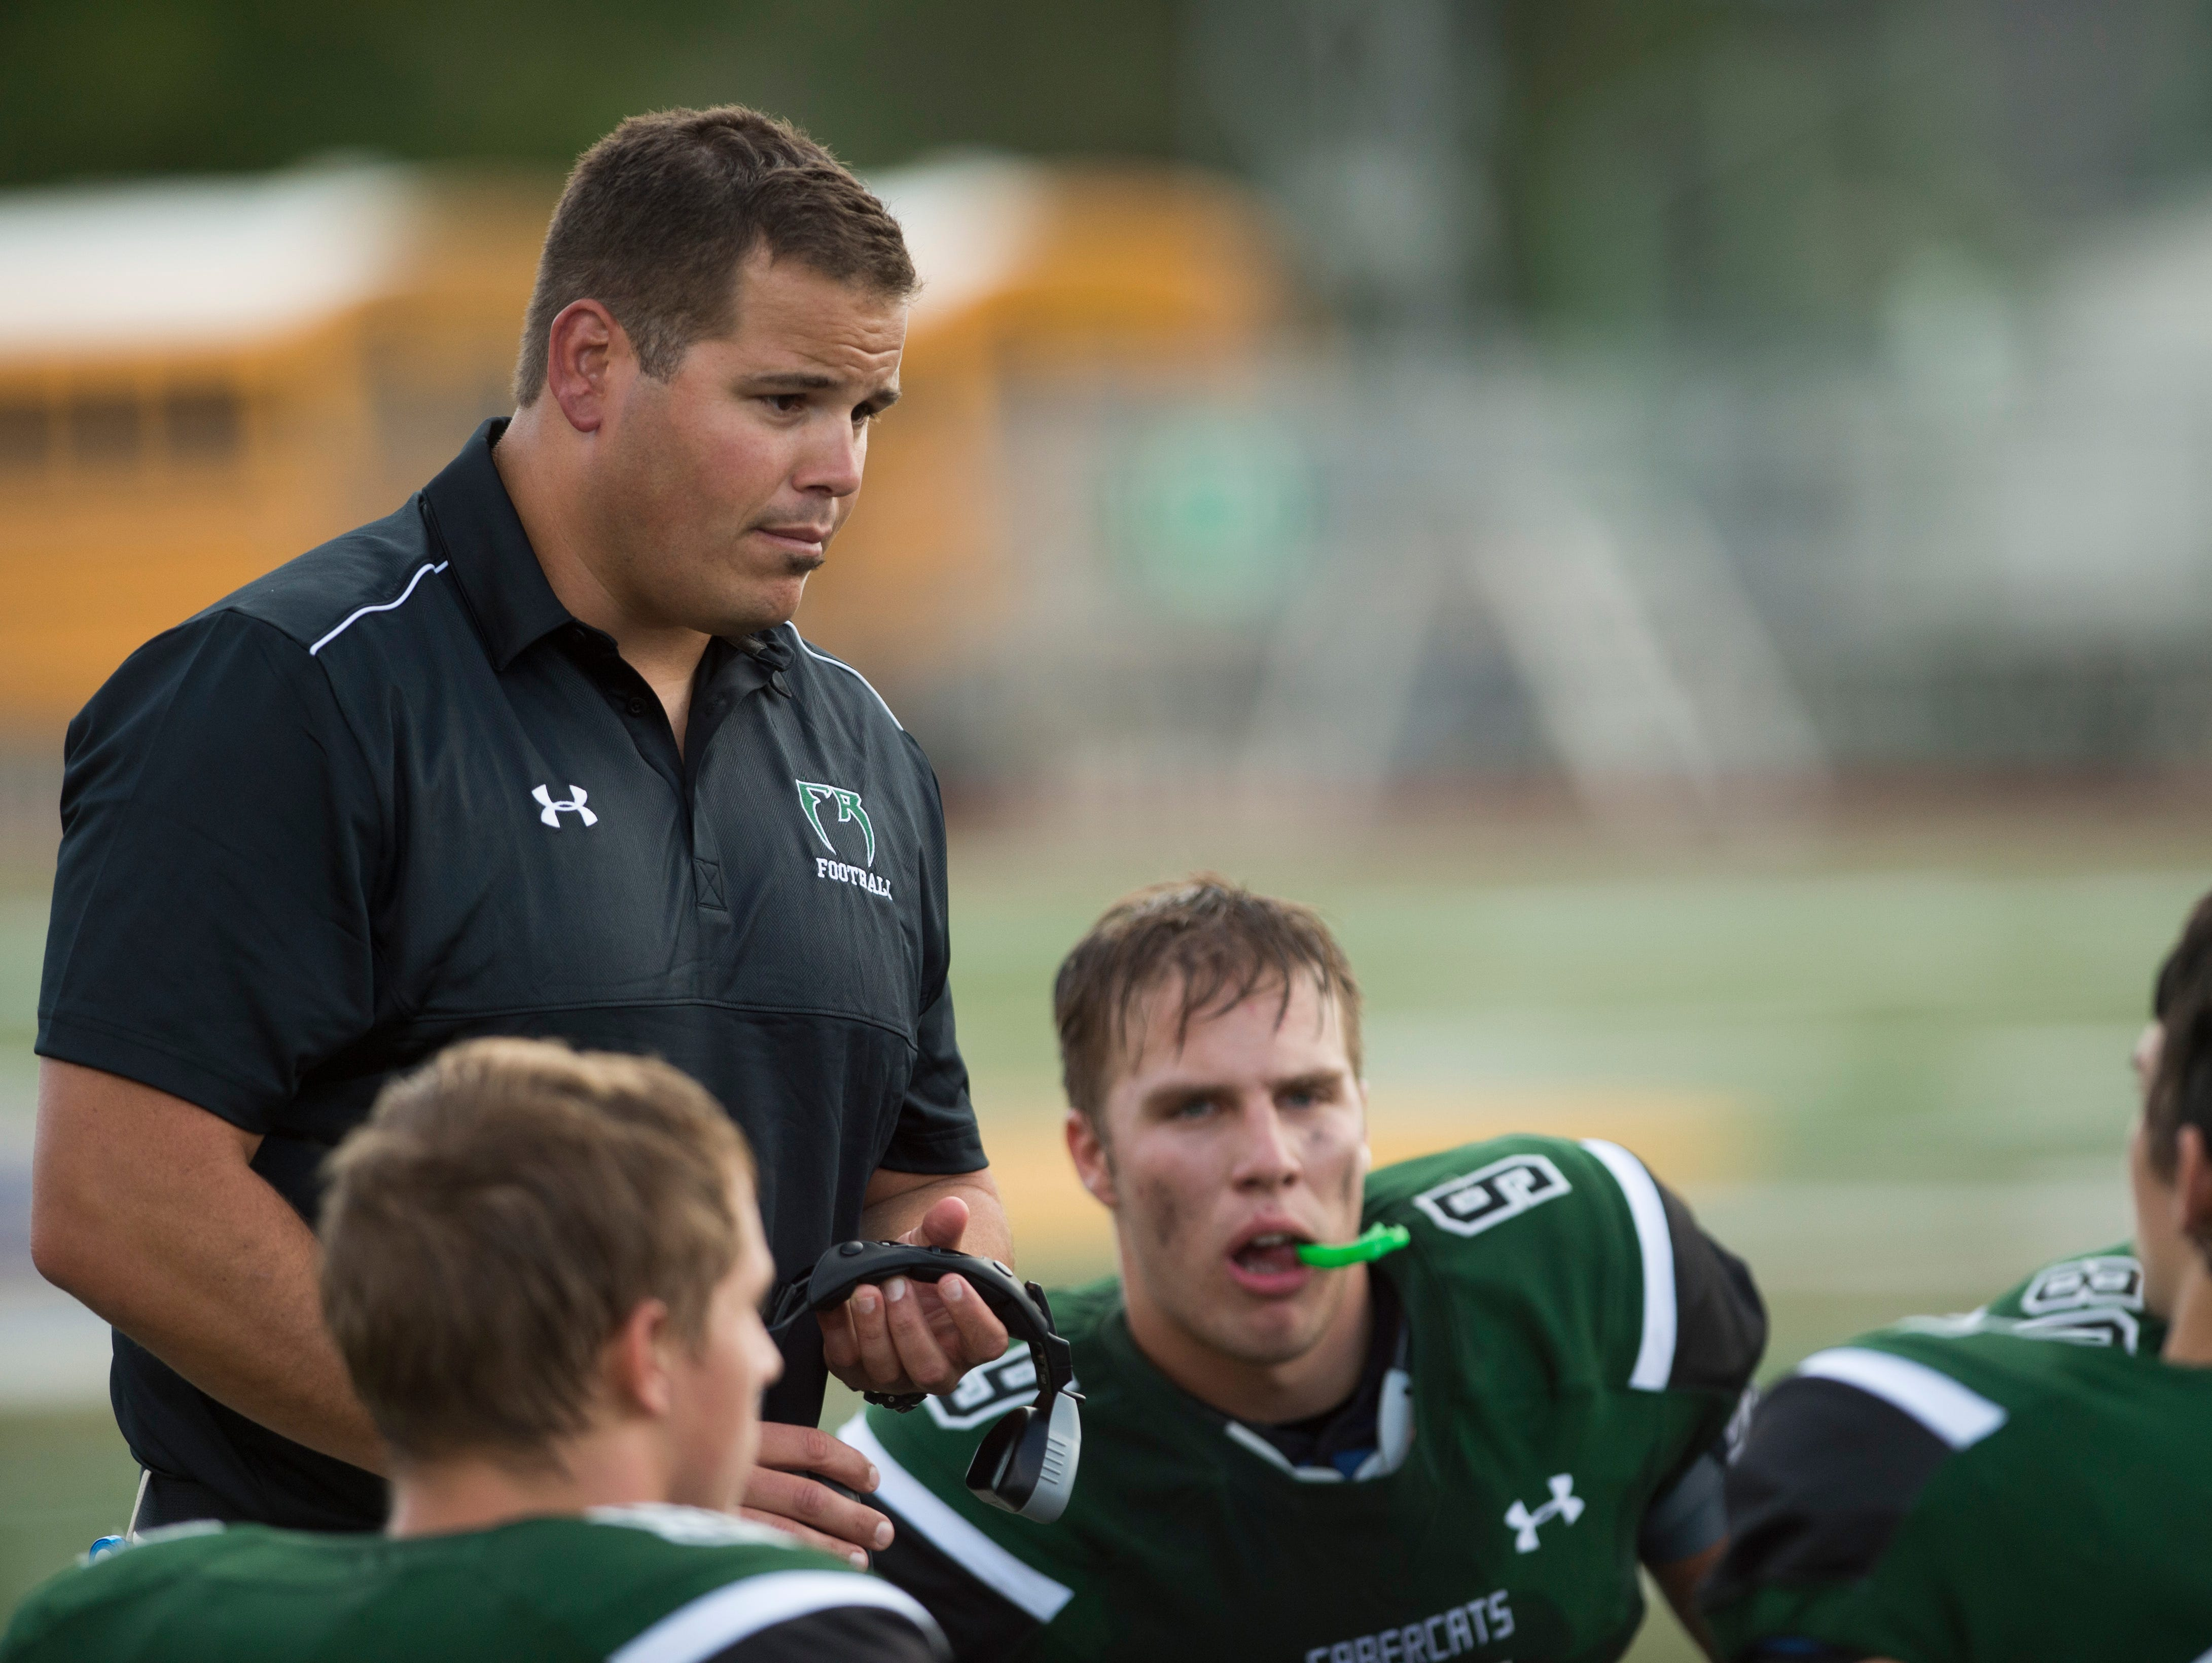 Former Fossil Ridge High School football coach Brian Tinker speaks with the team during a time out Sept. 3, 2015, at French Field. Tinker was relieved of his duties March 25.